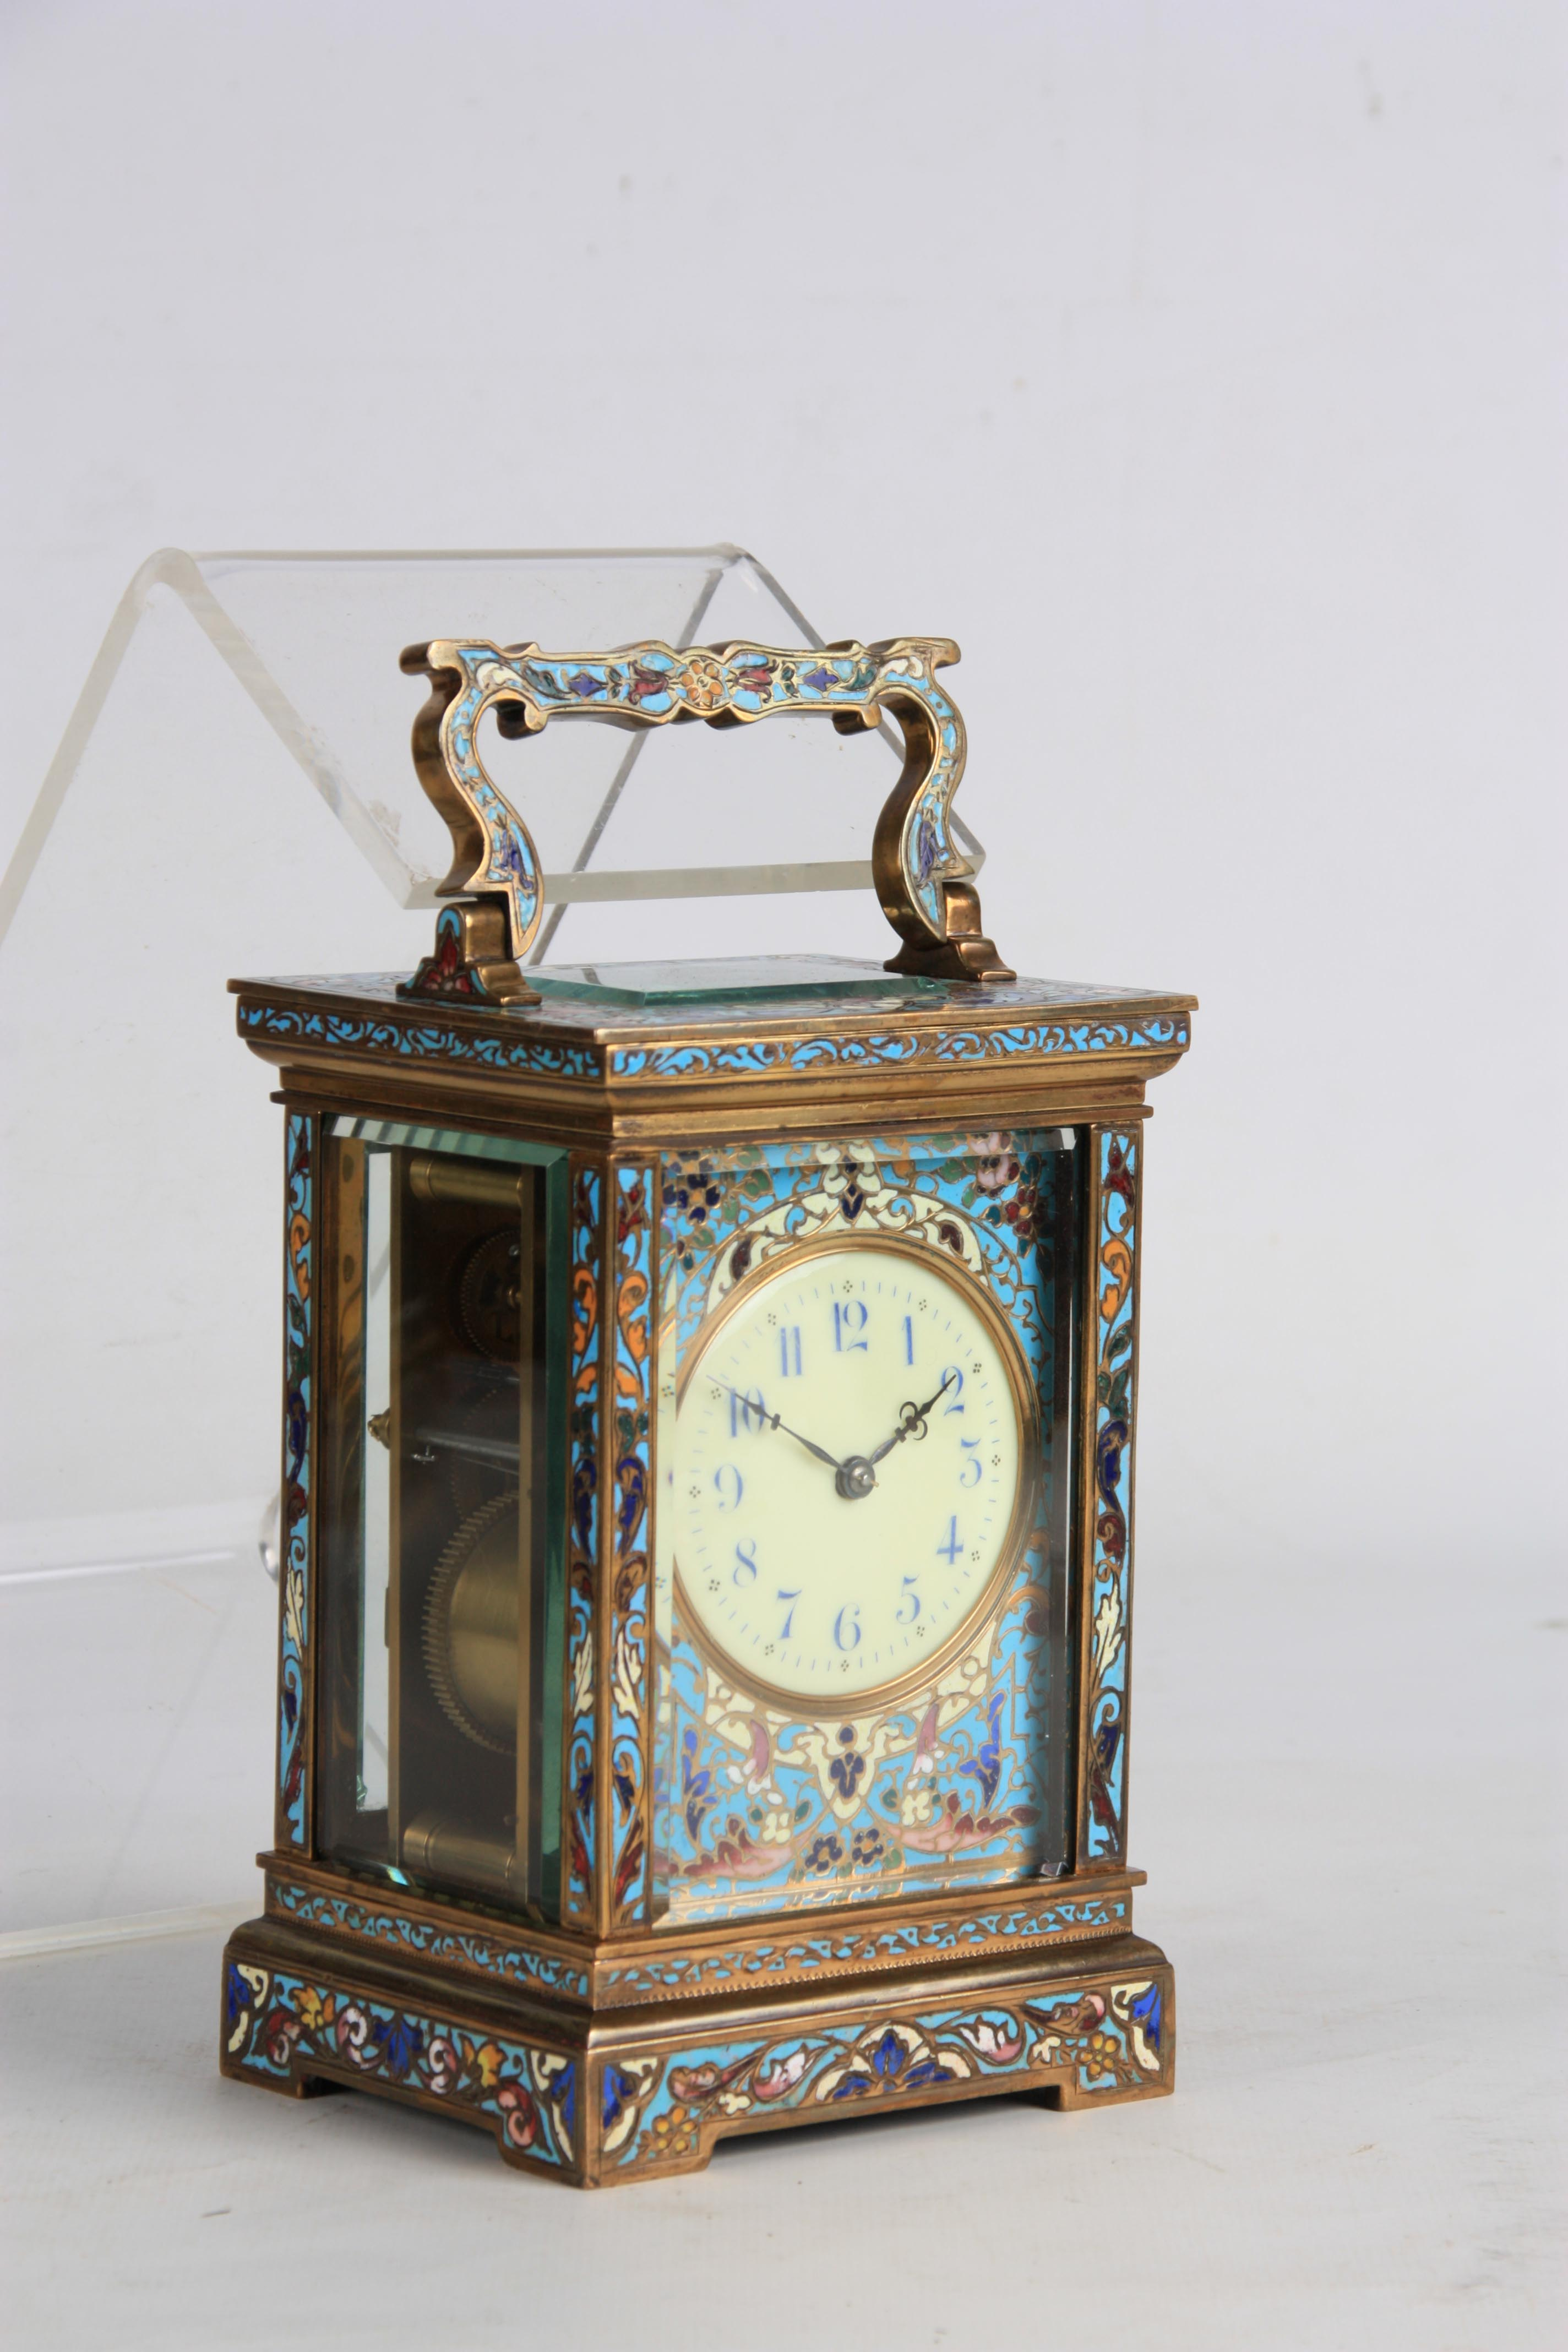 A LATE 19TH CENTURY FRENCH CHAMPLEVE ENAMEL STRIKING CARRIAGE CLOCK the case covered in champleve - Image 3 of 6